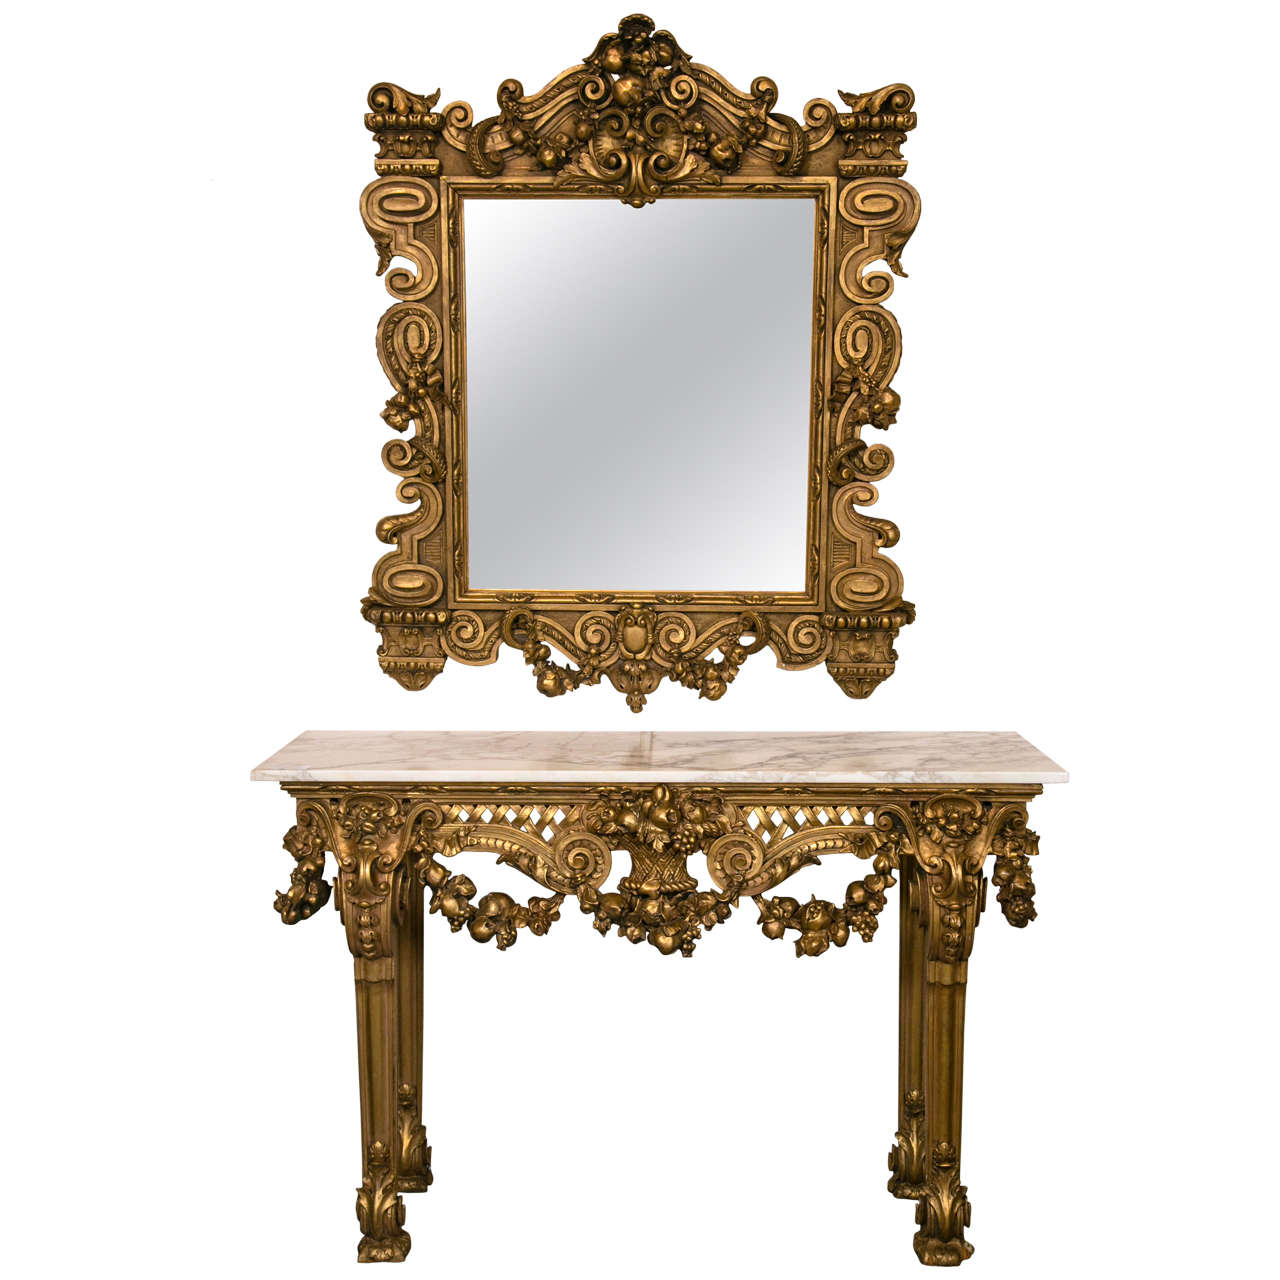 Marble Top Console Table with Matching Mirror by Maison Jansen